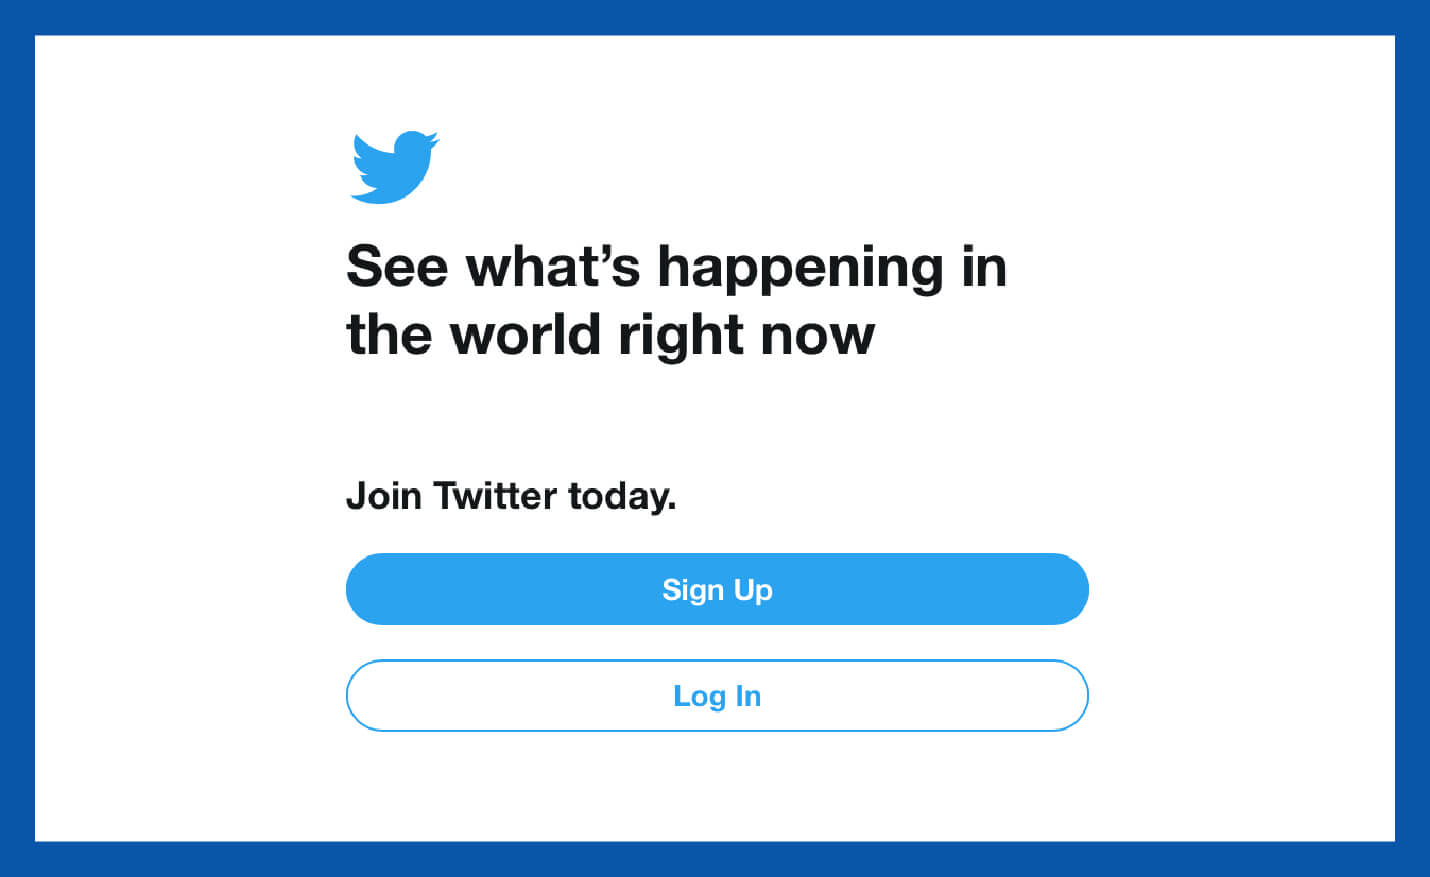 value proposition example from Twitter landing page to see what's happening in the world right now